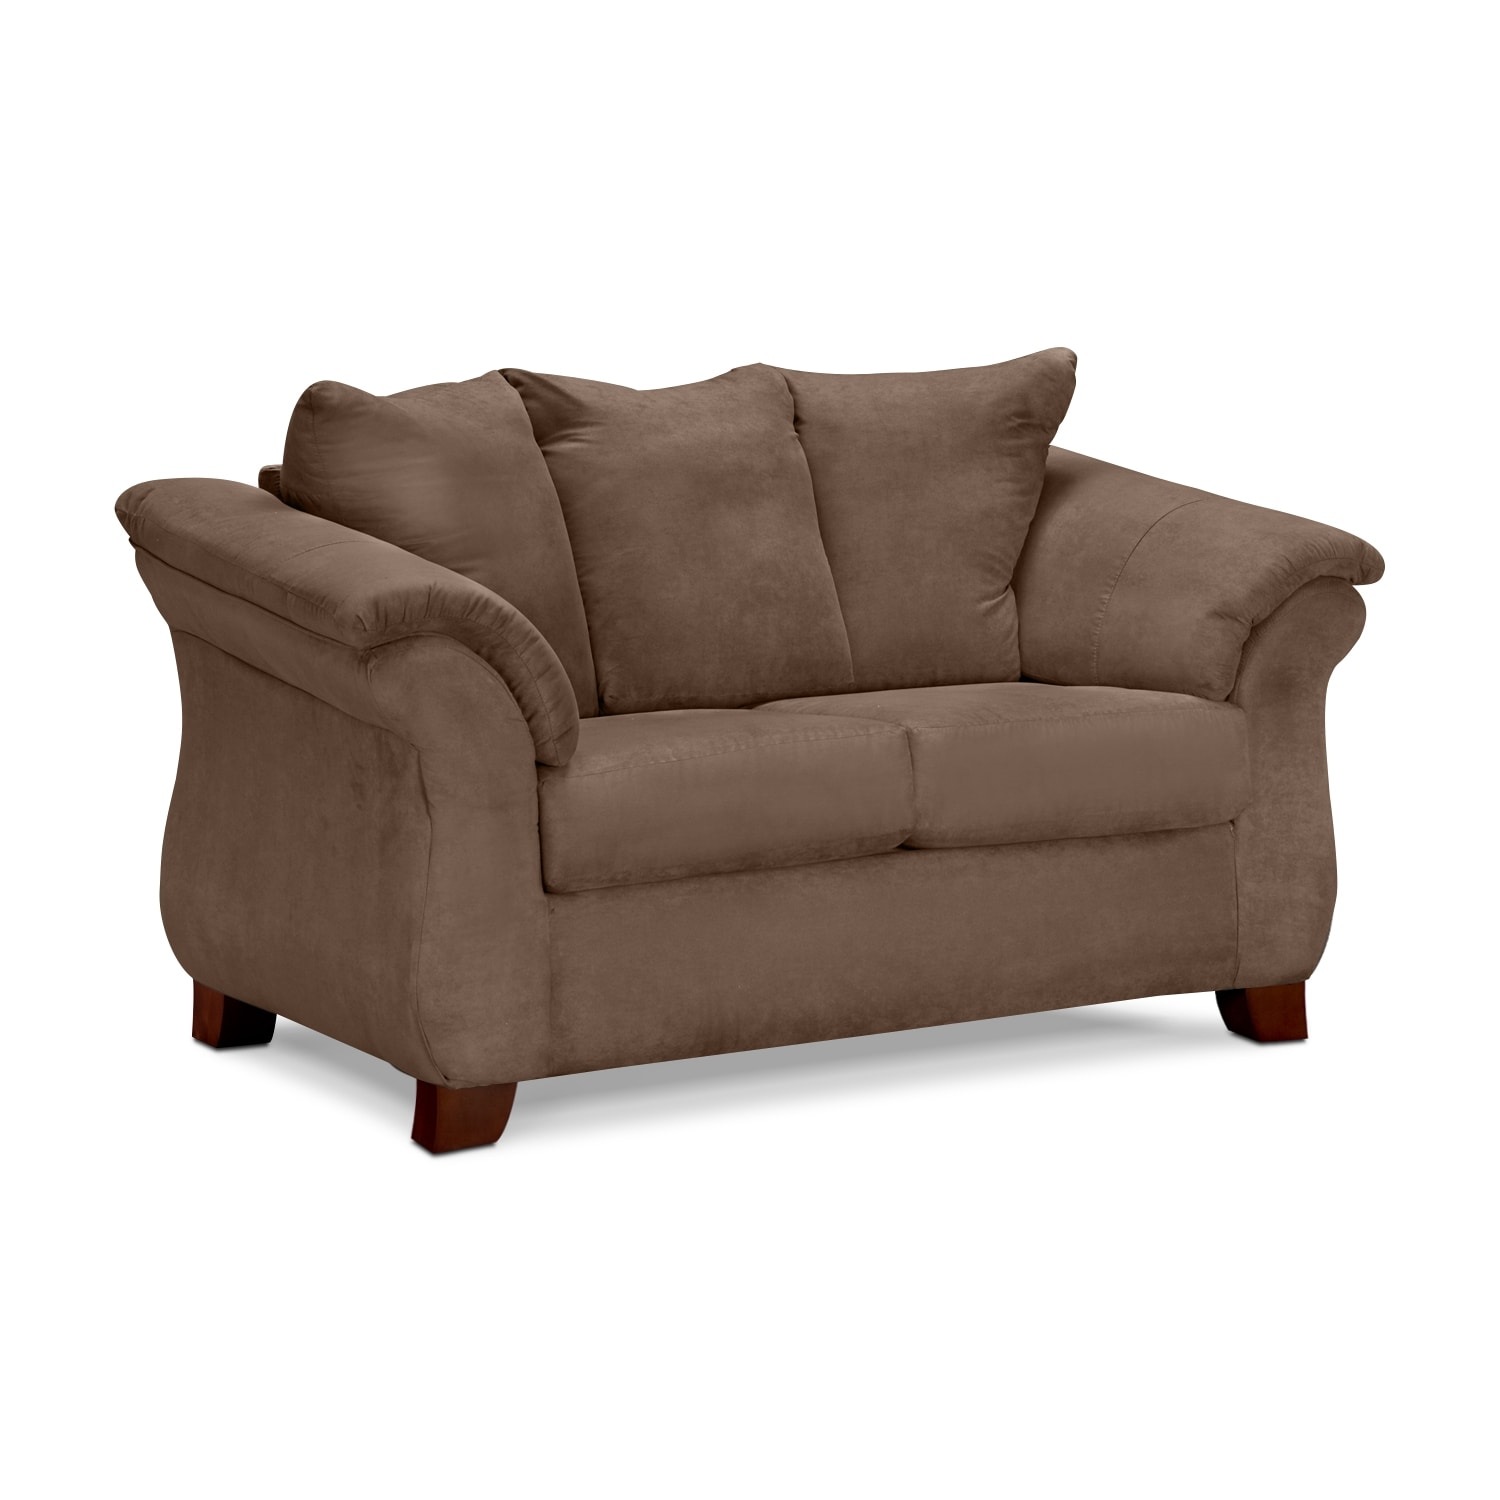 Furnitre: Adrian Sofa And Loveseat Set - Taupe